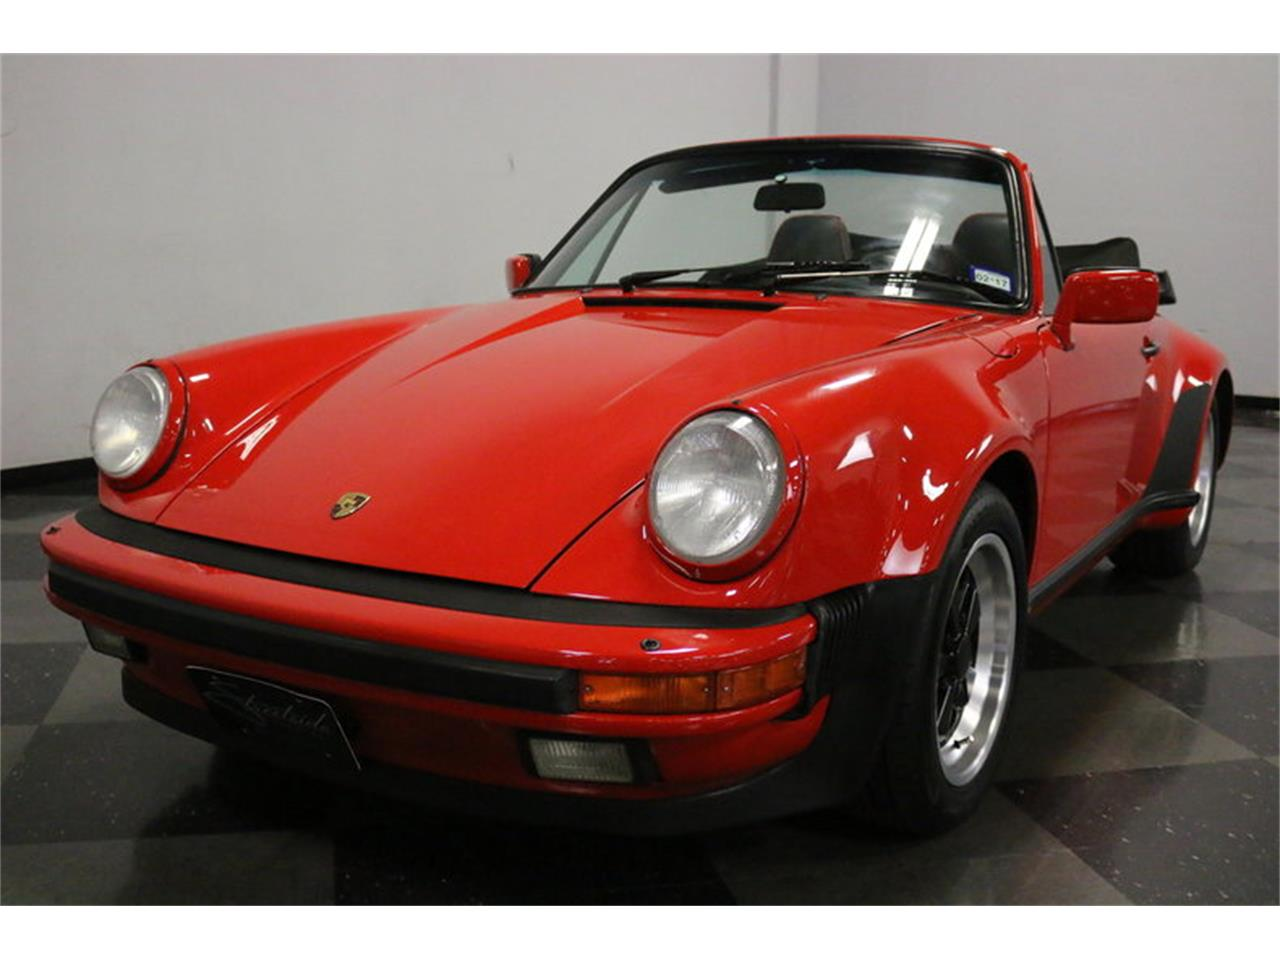 Large Picture of 1988 Porsche 911 located in Texas - $99,995.00 Offered by Streetside Classics - Dallas / Fort Worth - LBK3